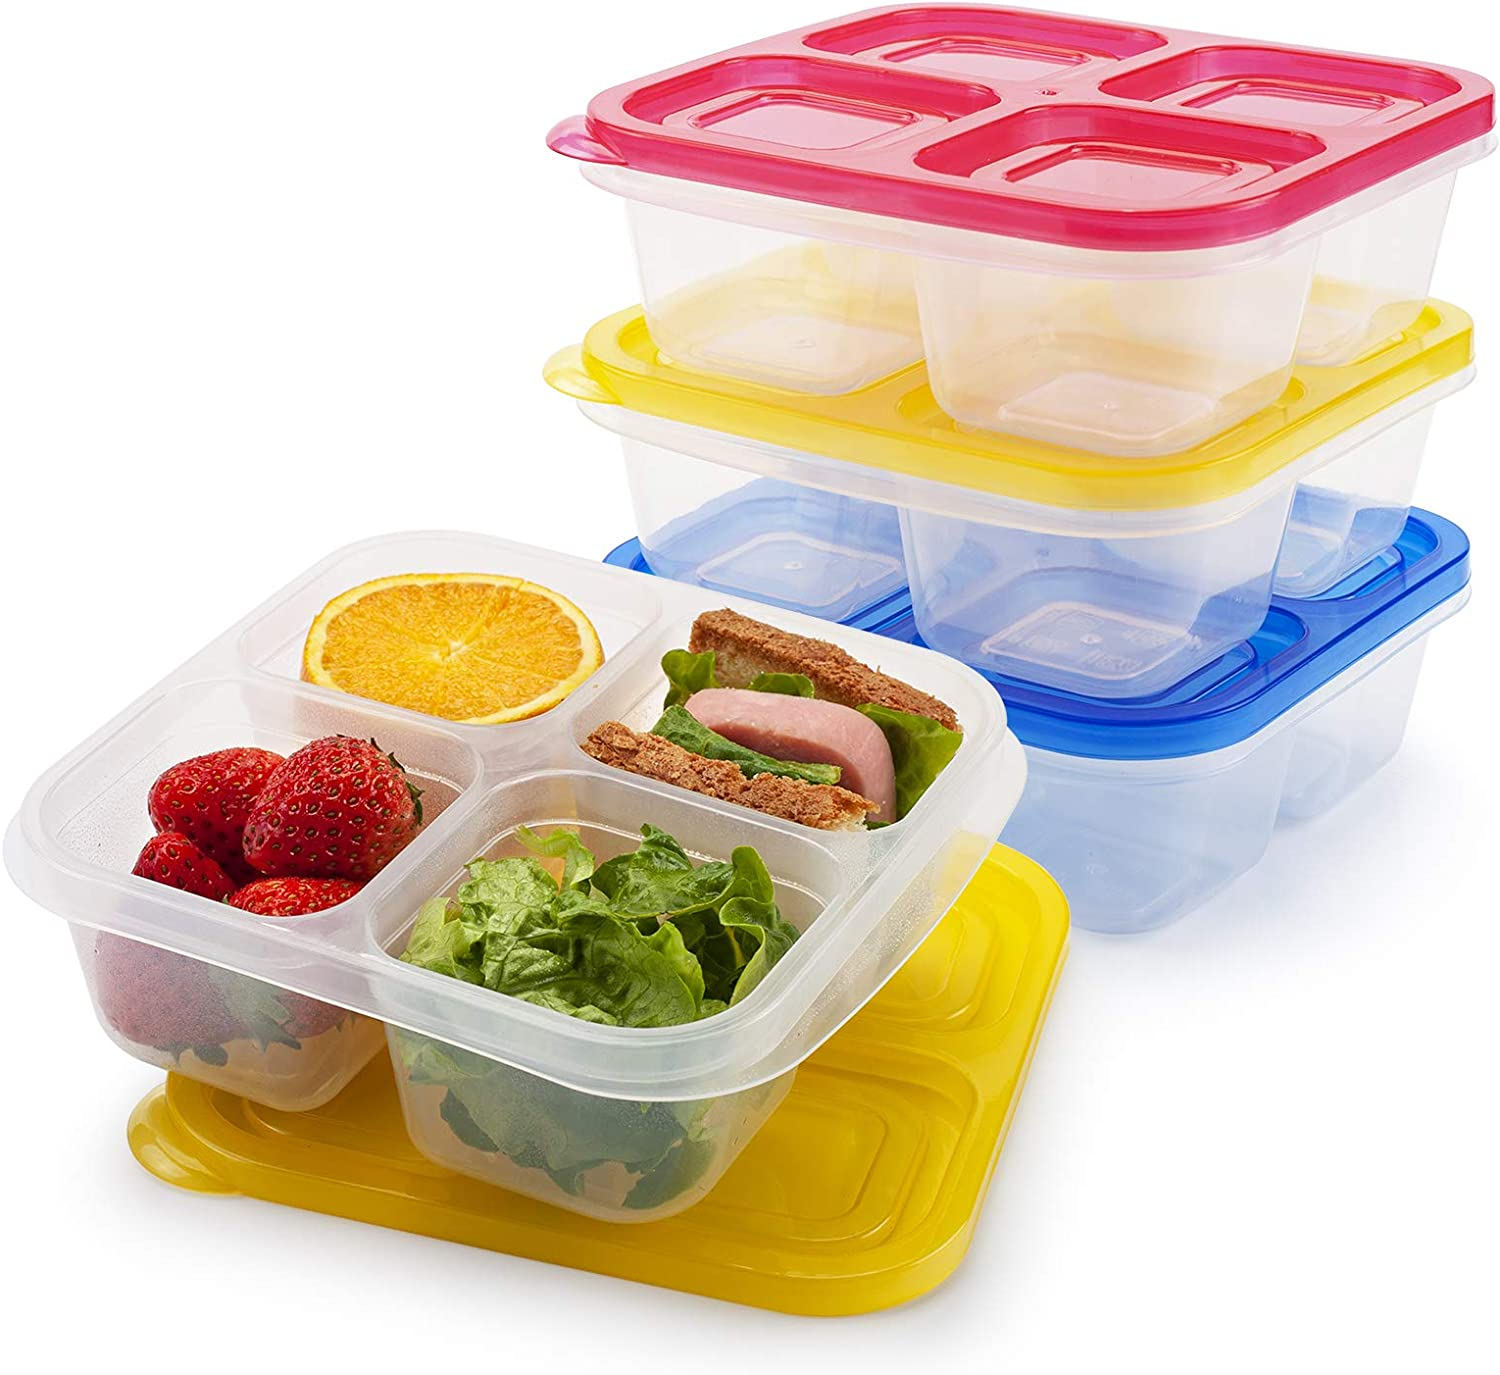 Freshmage Bento Snack Food Containers, Set of 3 Reusable 4 Compartments Leakproof Food Meal Prep Containers for School and Work